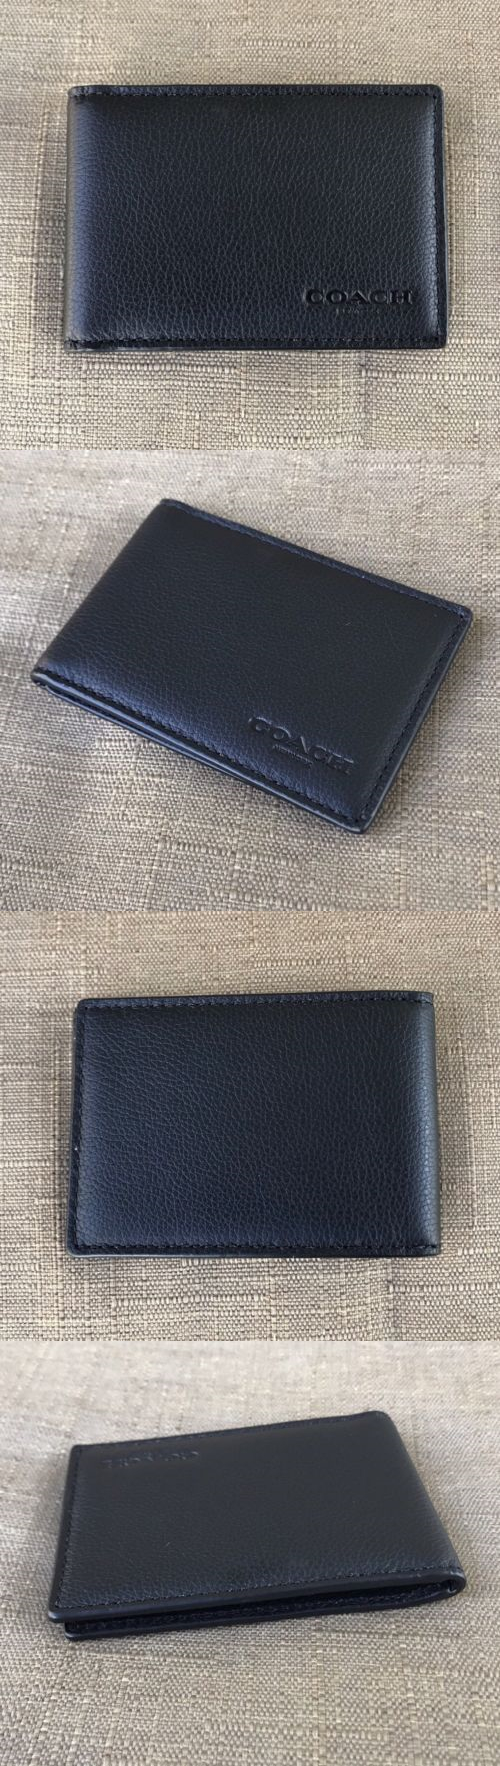 Business and credit card cases 105860 new coach men s sport calf business and credit card cases 105860 new coach men s sport calf leather slim card reheart Image collections